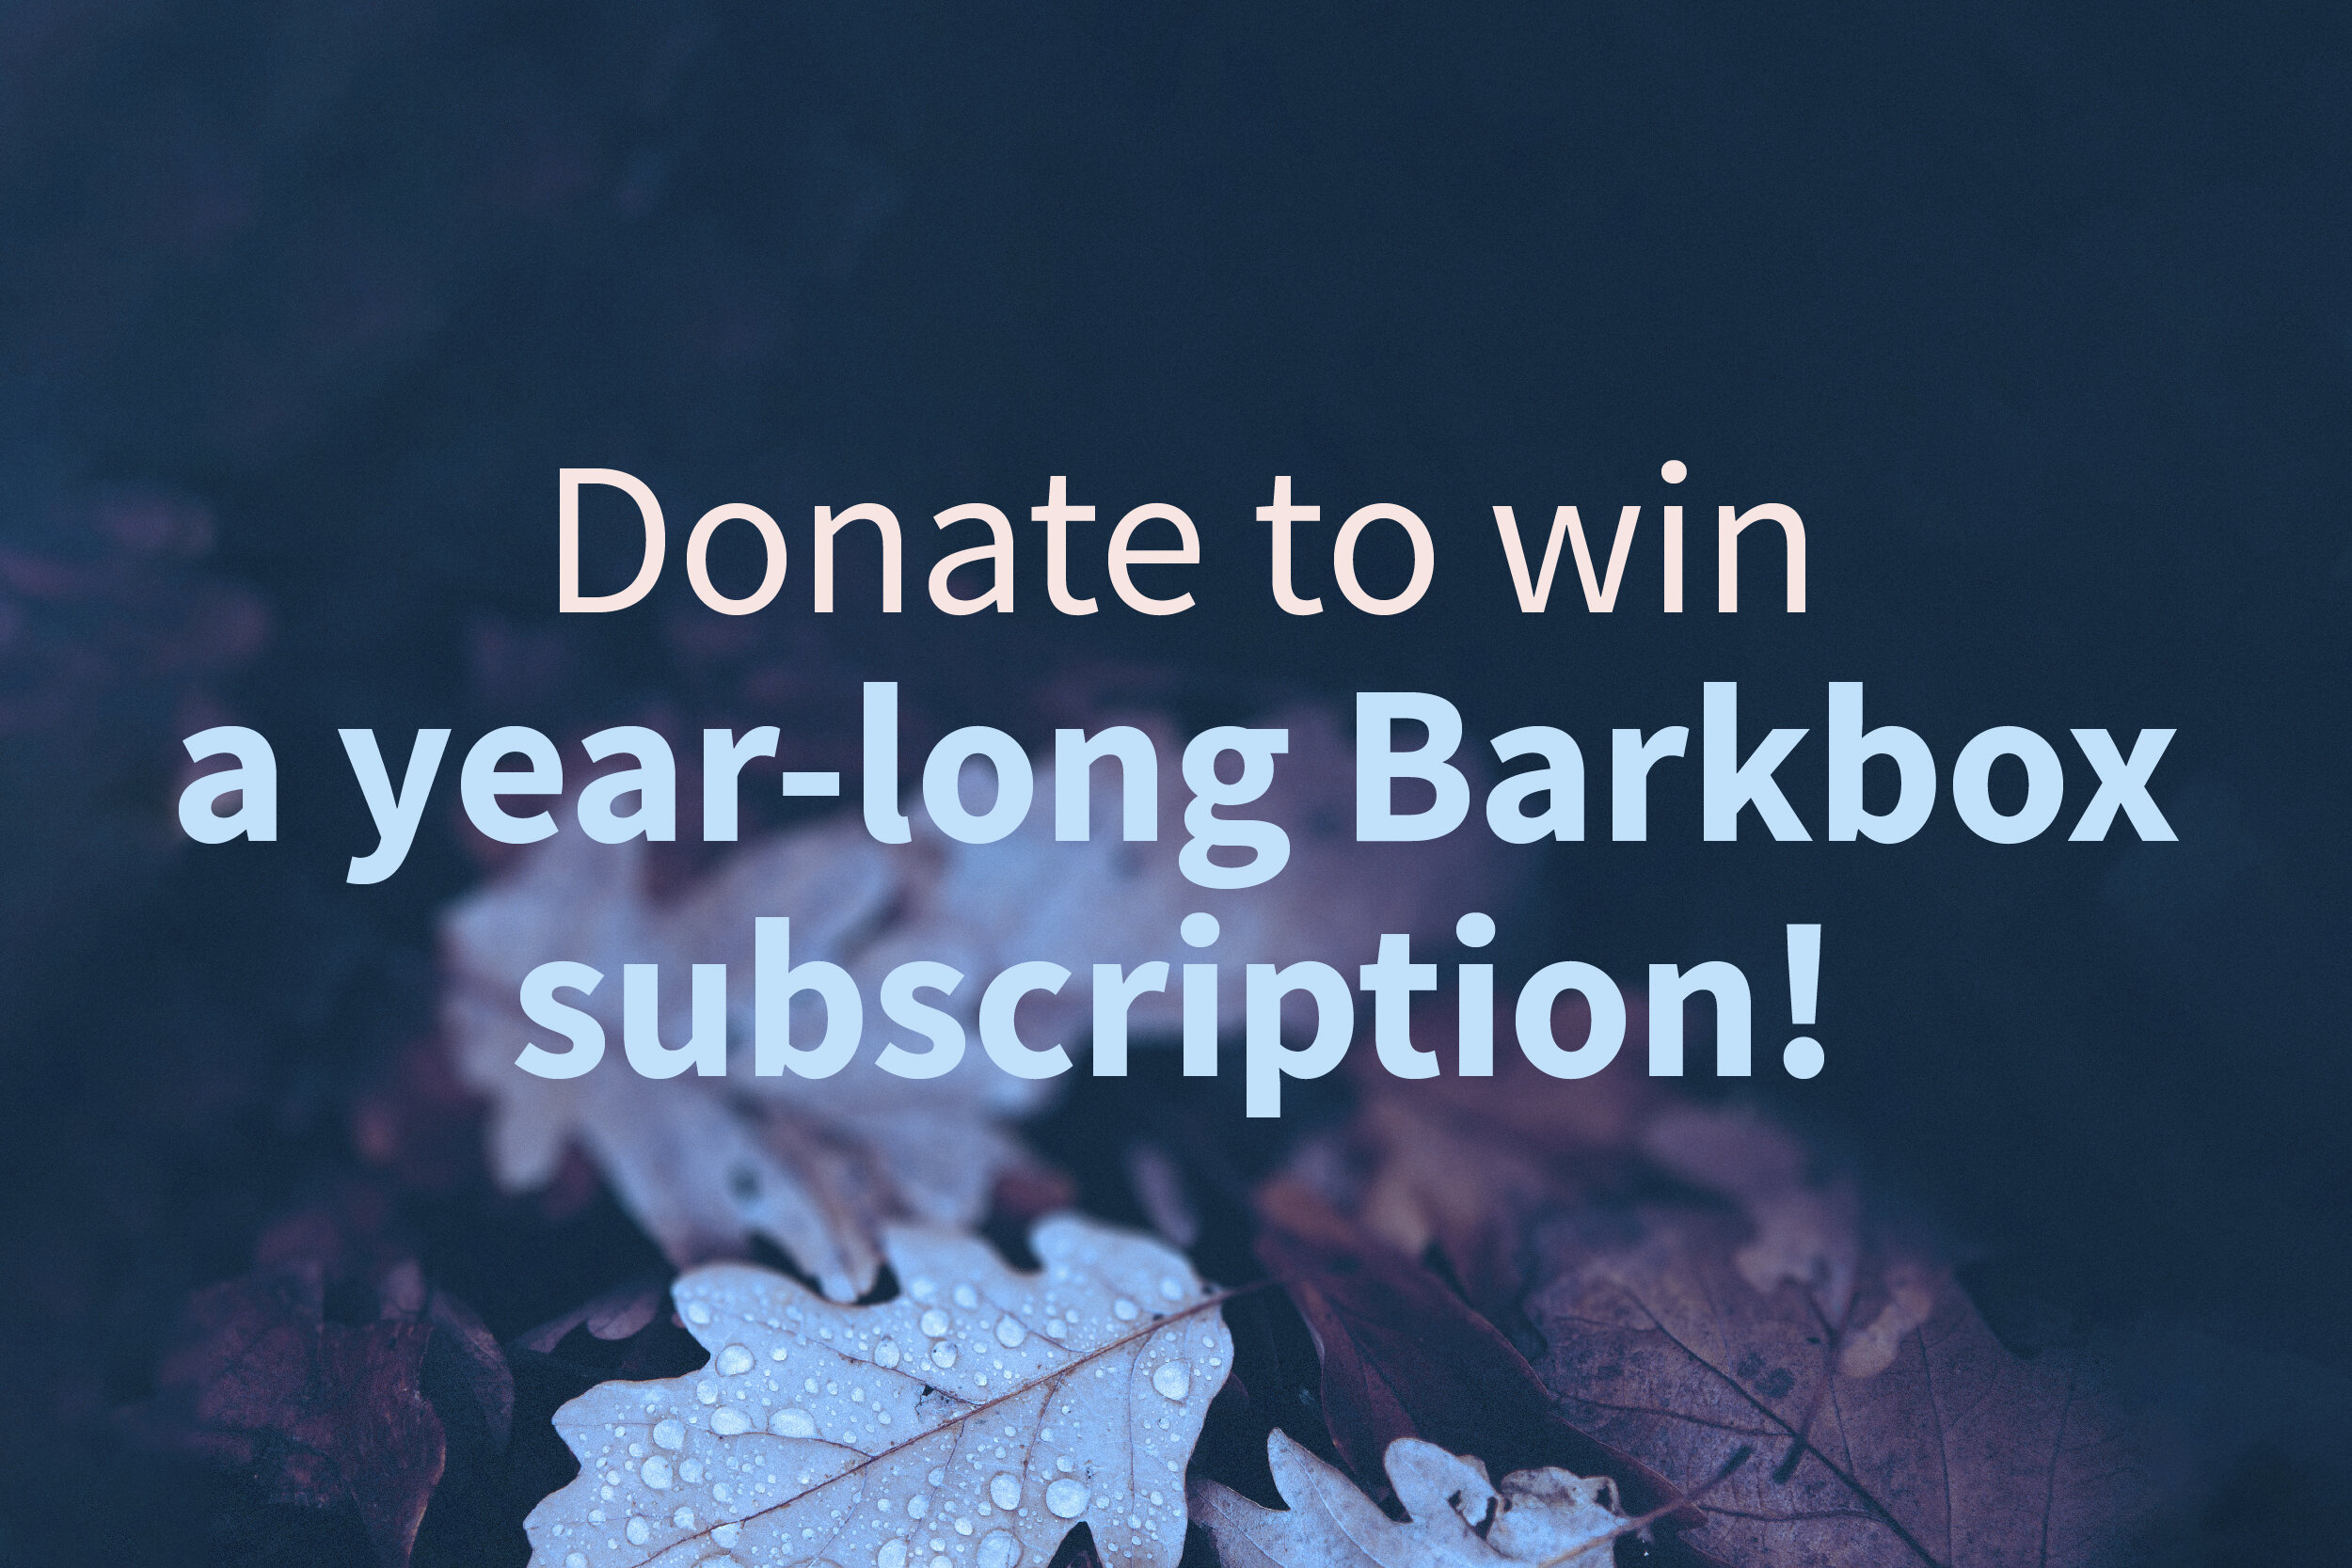 191003b donate_barkbox.jpg